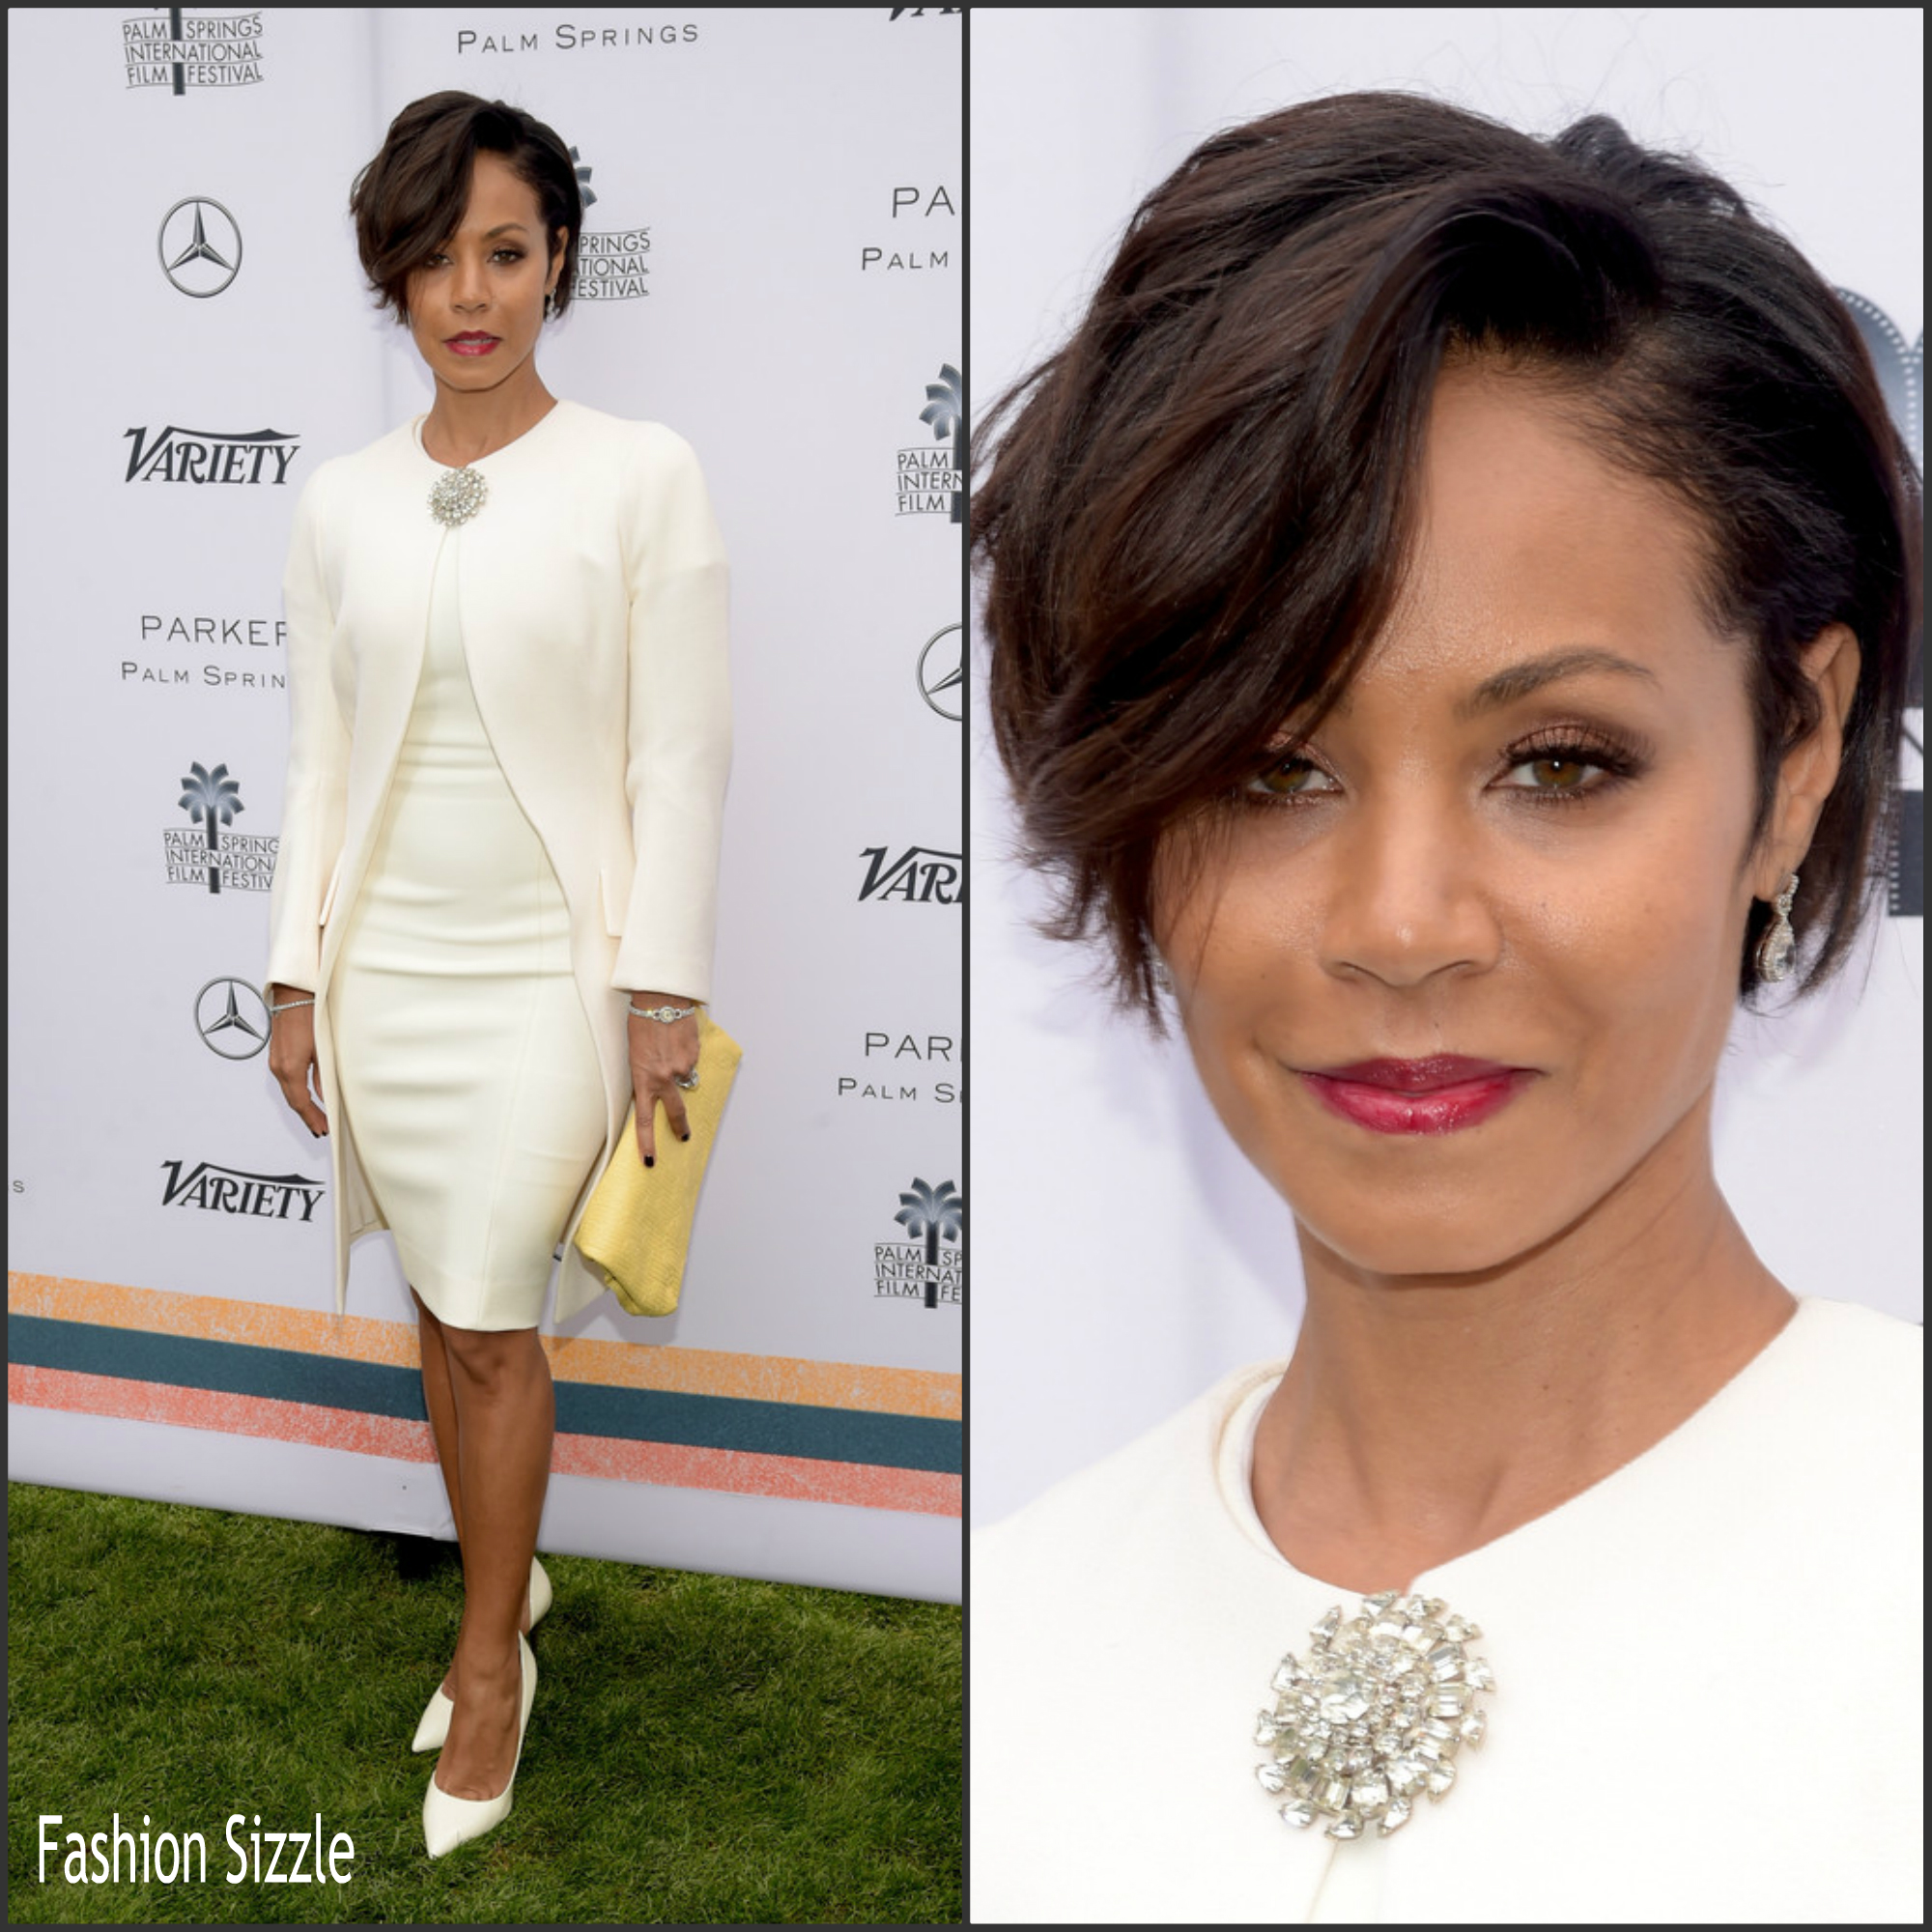 jada-pinkett-smith-in-christian-dior-27th-annual-palm-springs-international-film-festival-